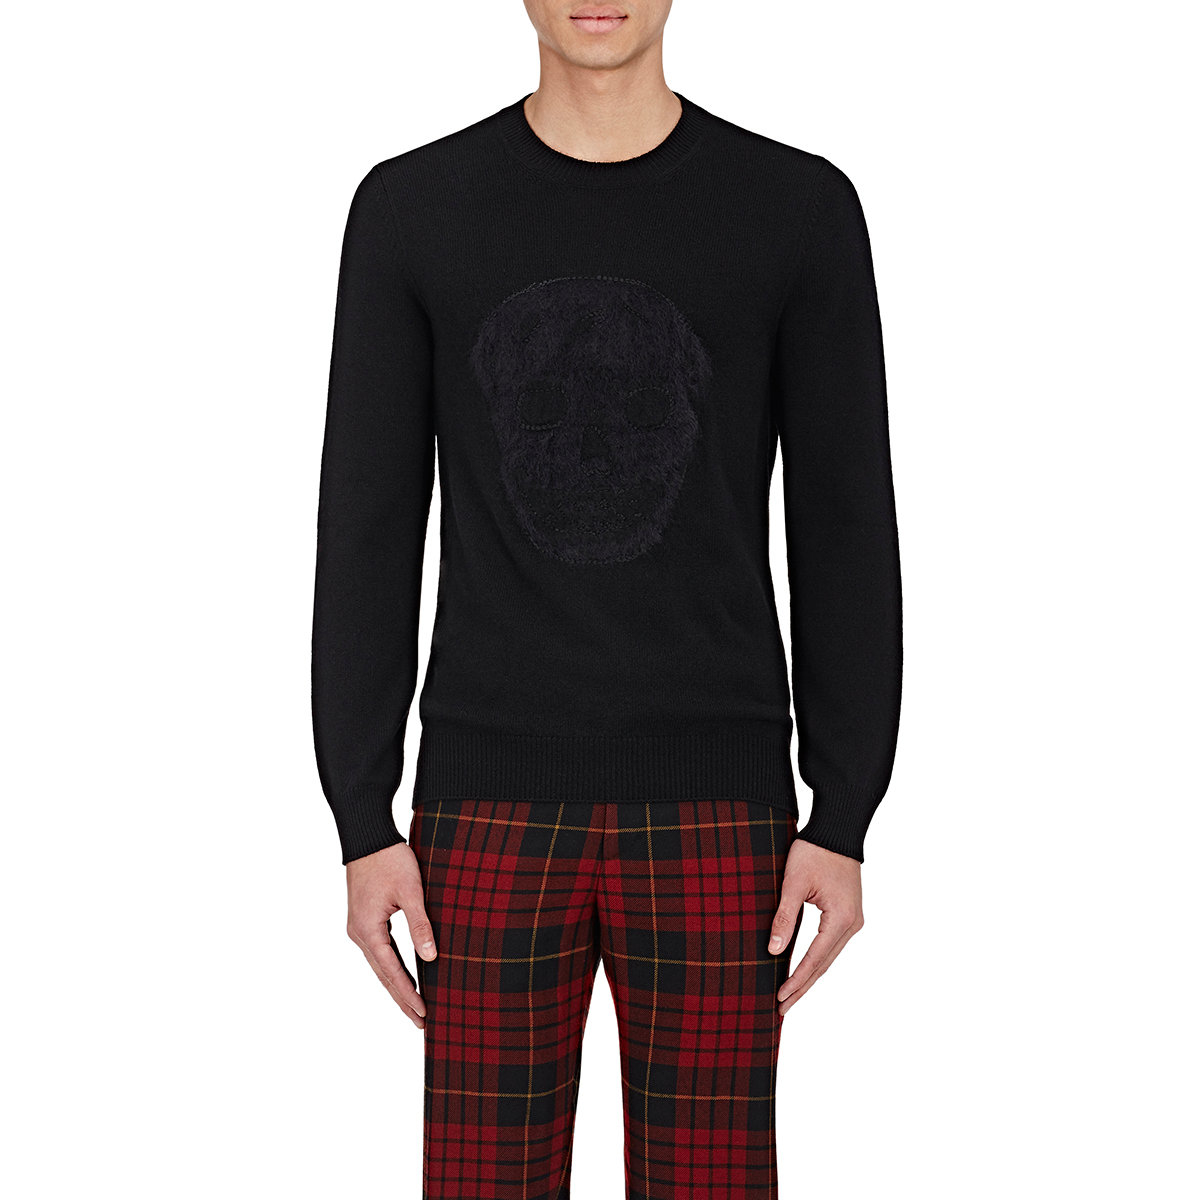 Alexander Mcqueen Mens Sweater 37